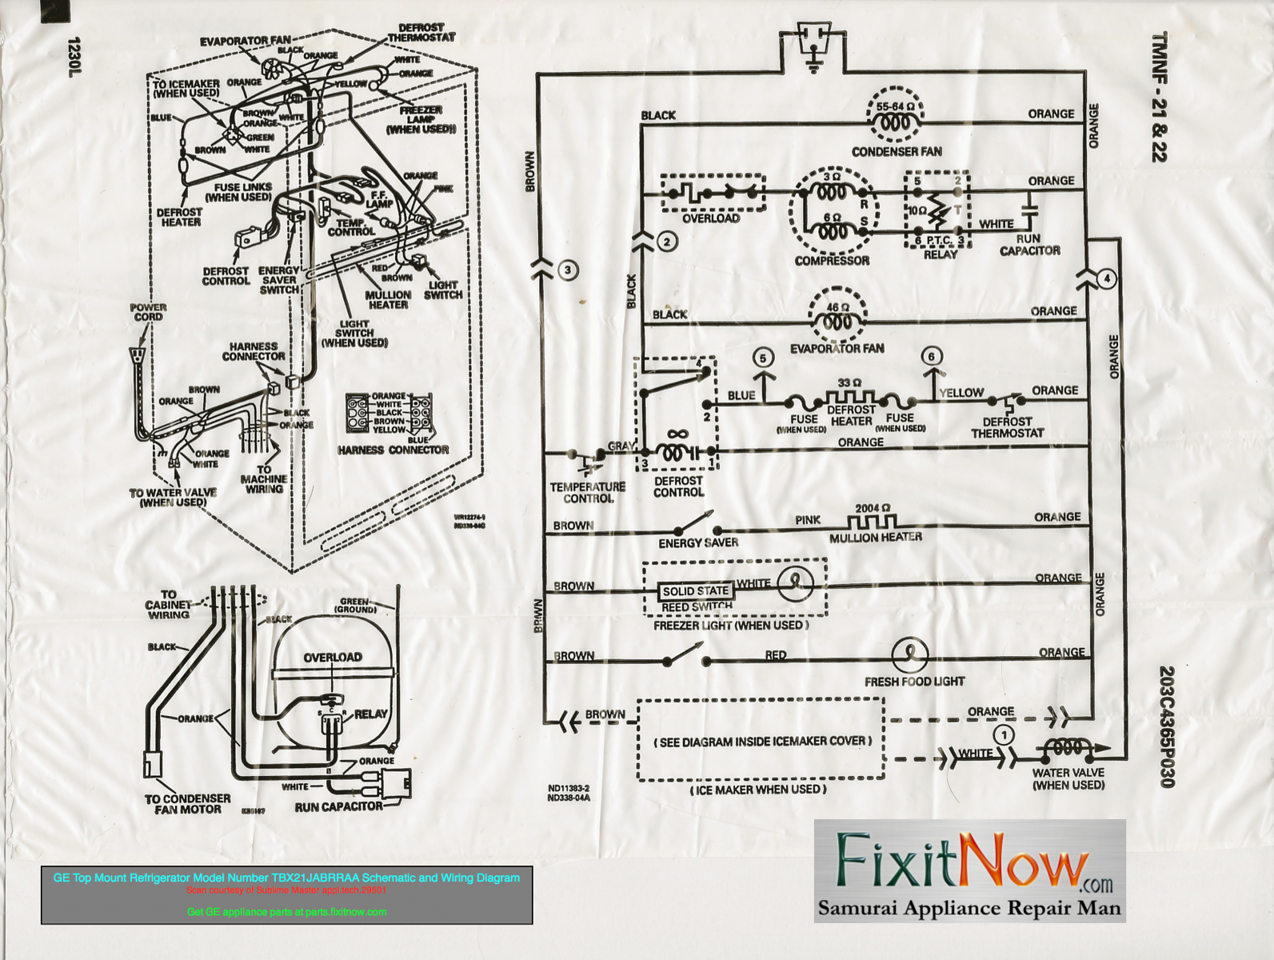 4904374061_e8eb3df6c6_o X2 wiring diagrams and schematics appliantology hotpoint fridge thermostat wiring diagram at edmiracle.co